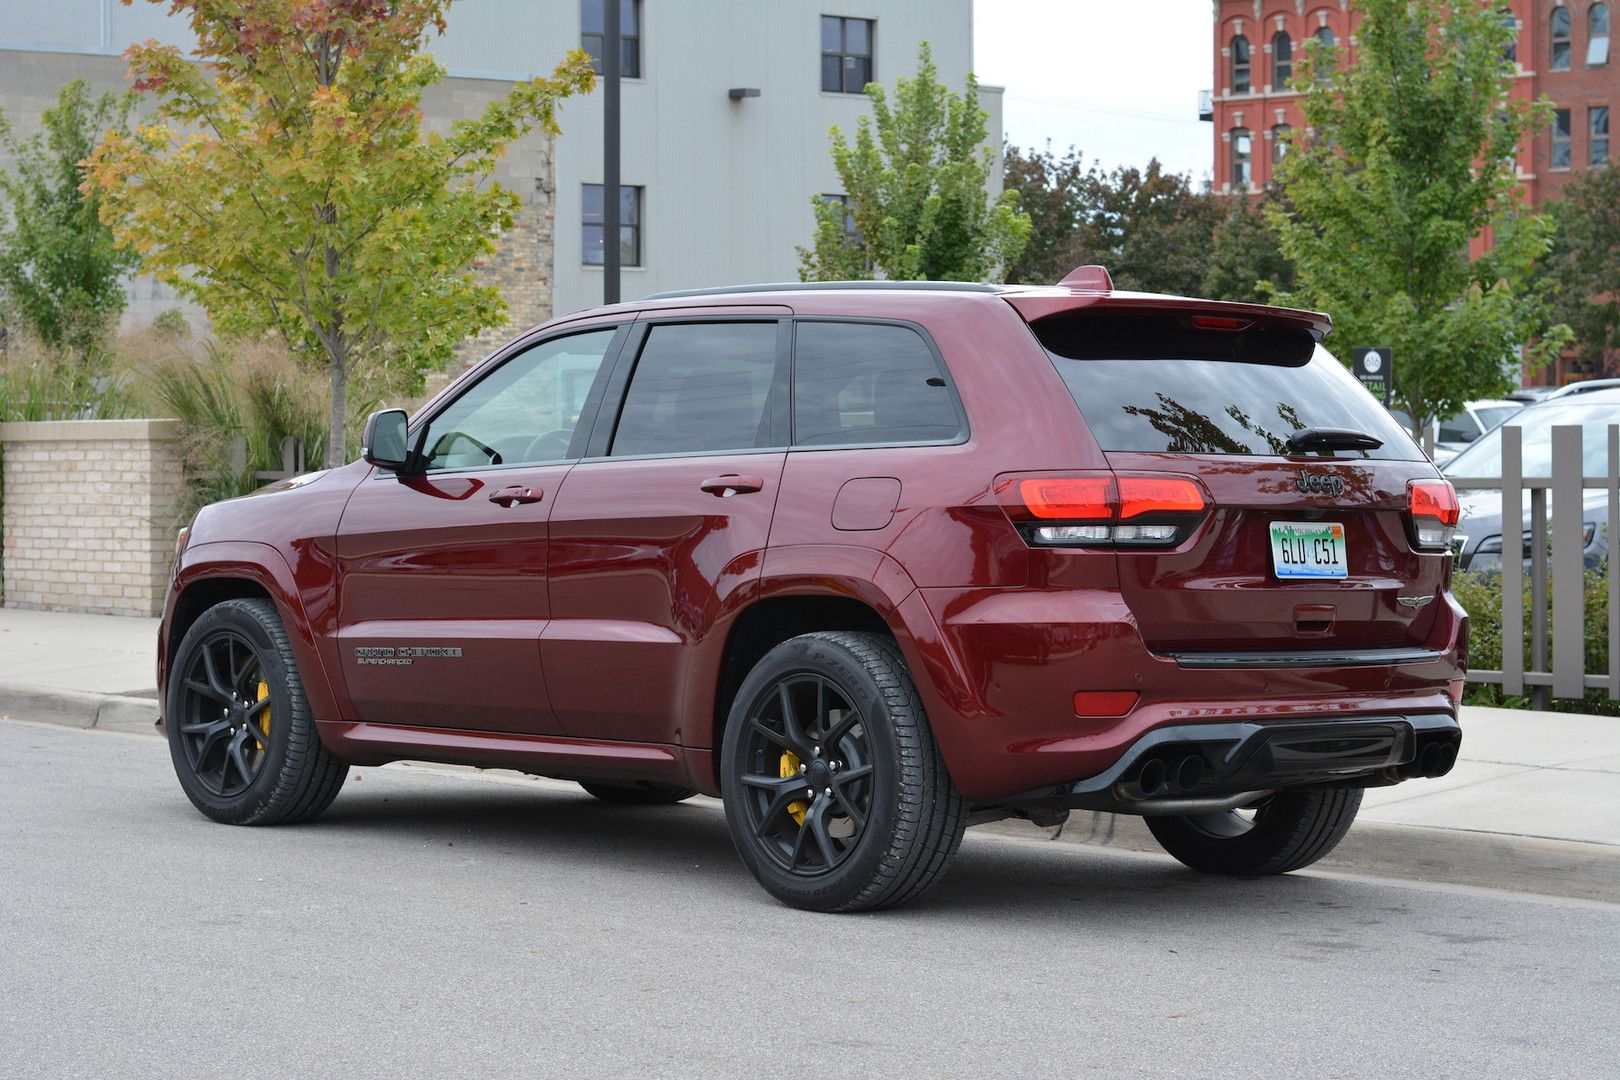 2019 Jeep Grand Cherokee Trackhawk Review Gtspirit In 2020